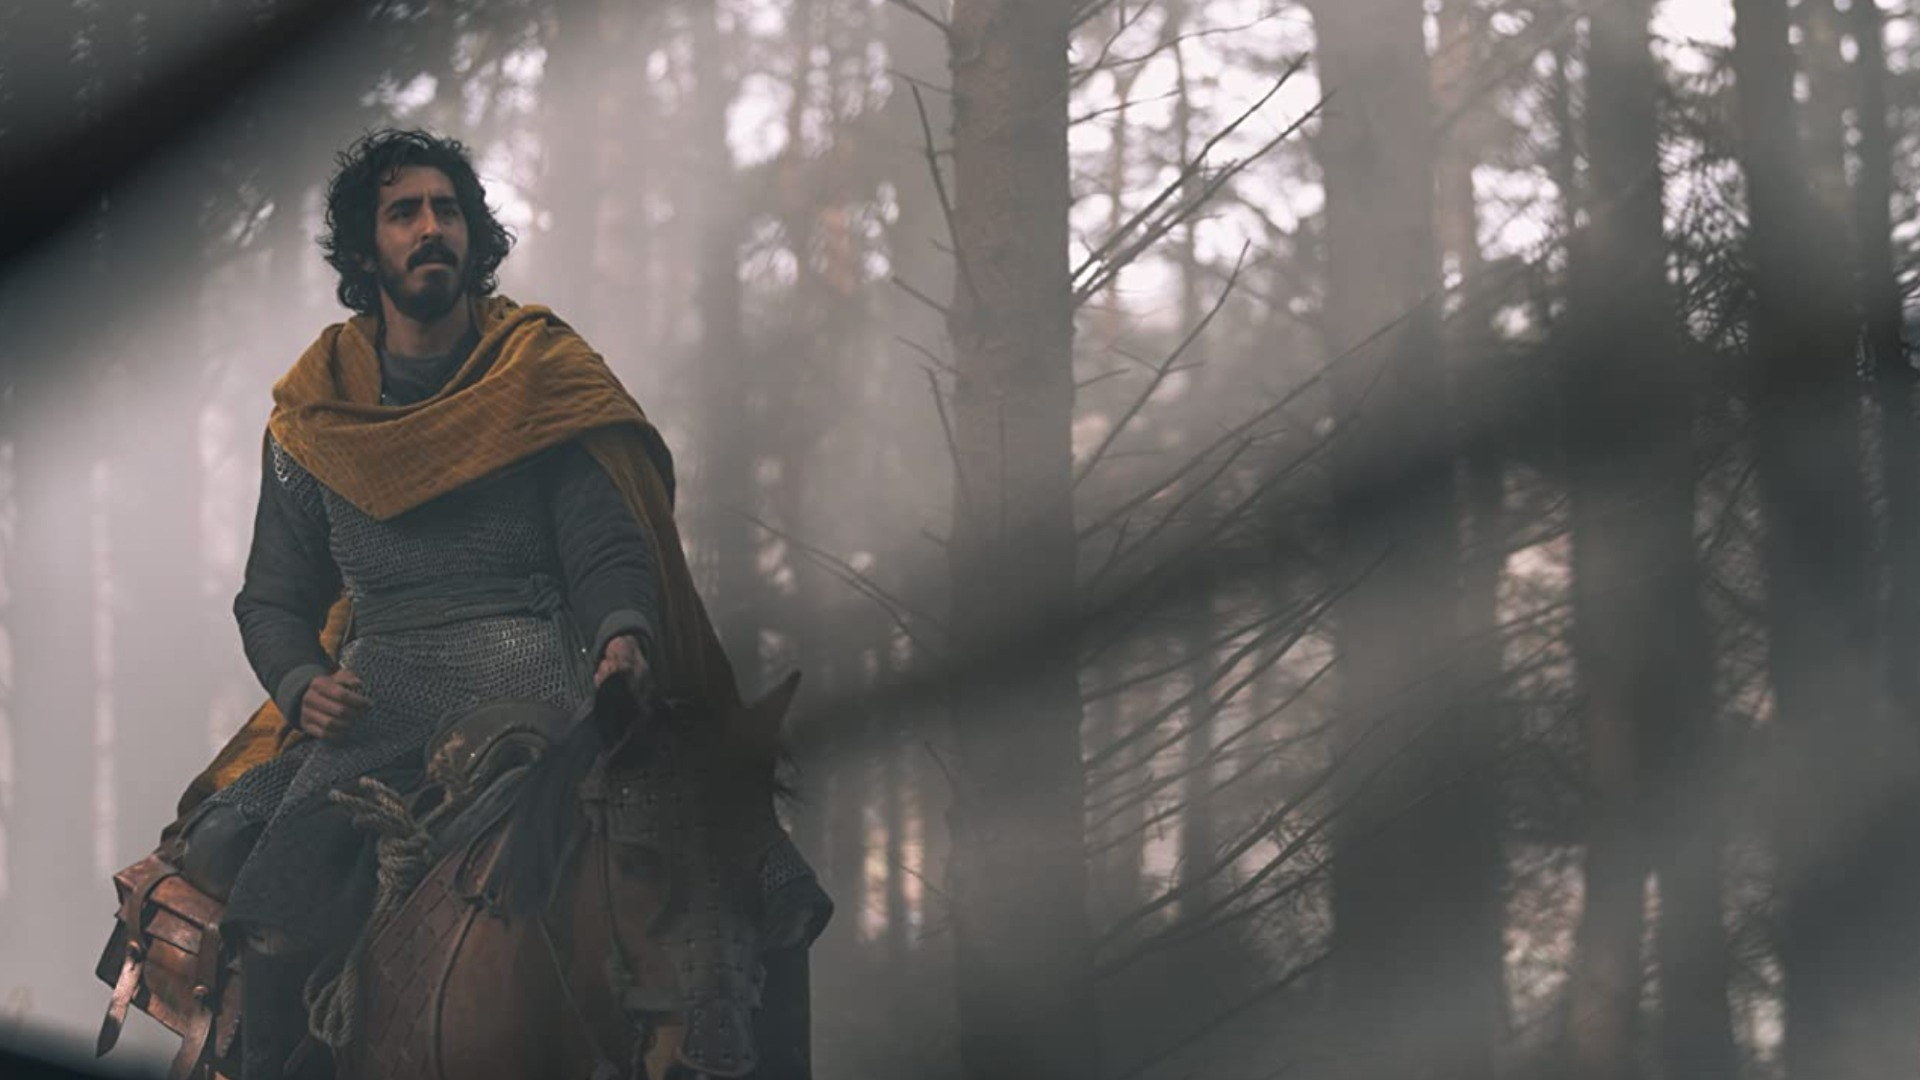 Film review: The Green Knight